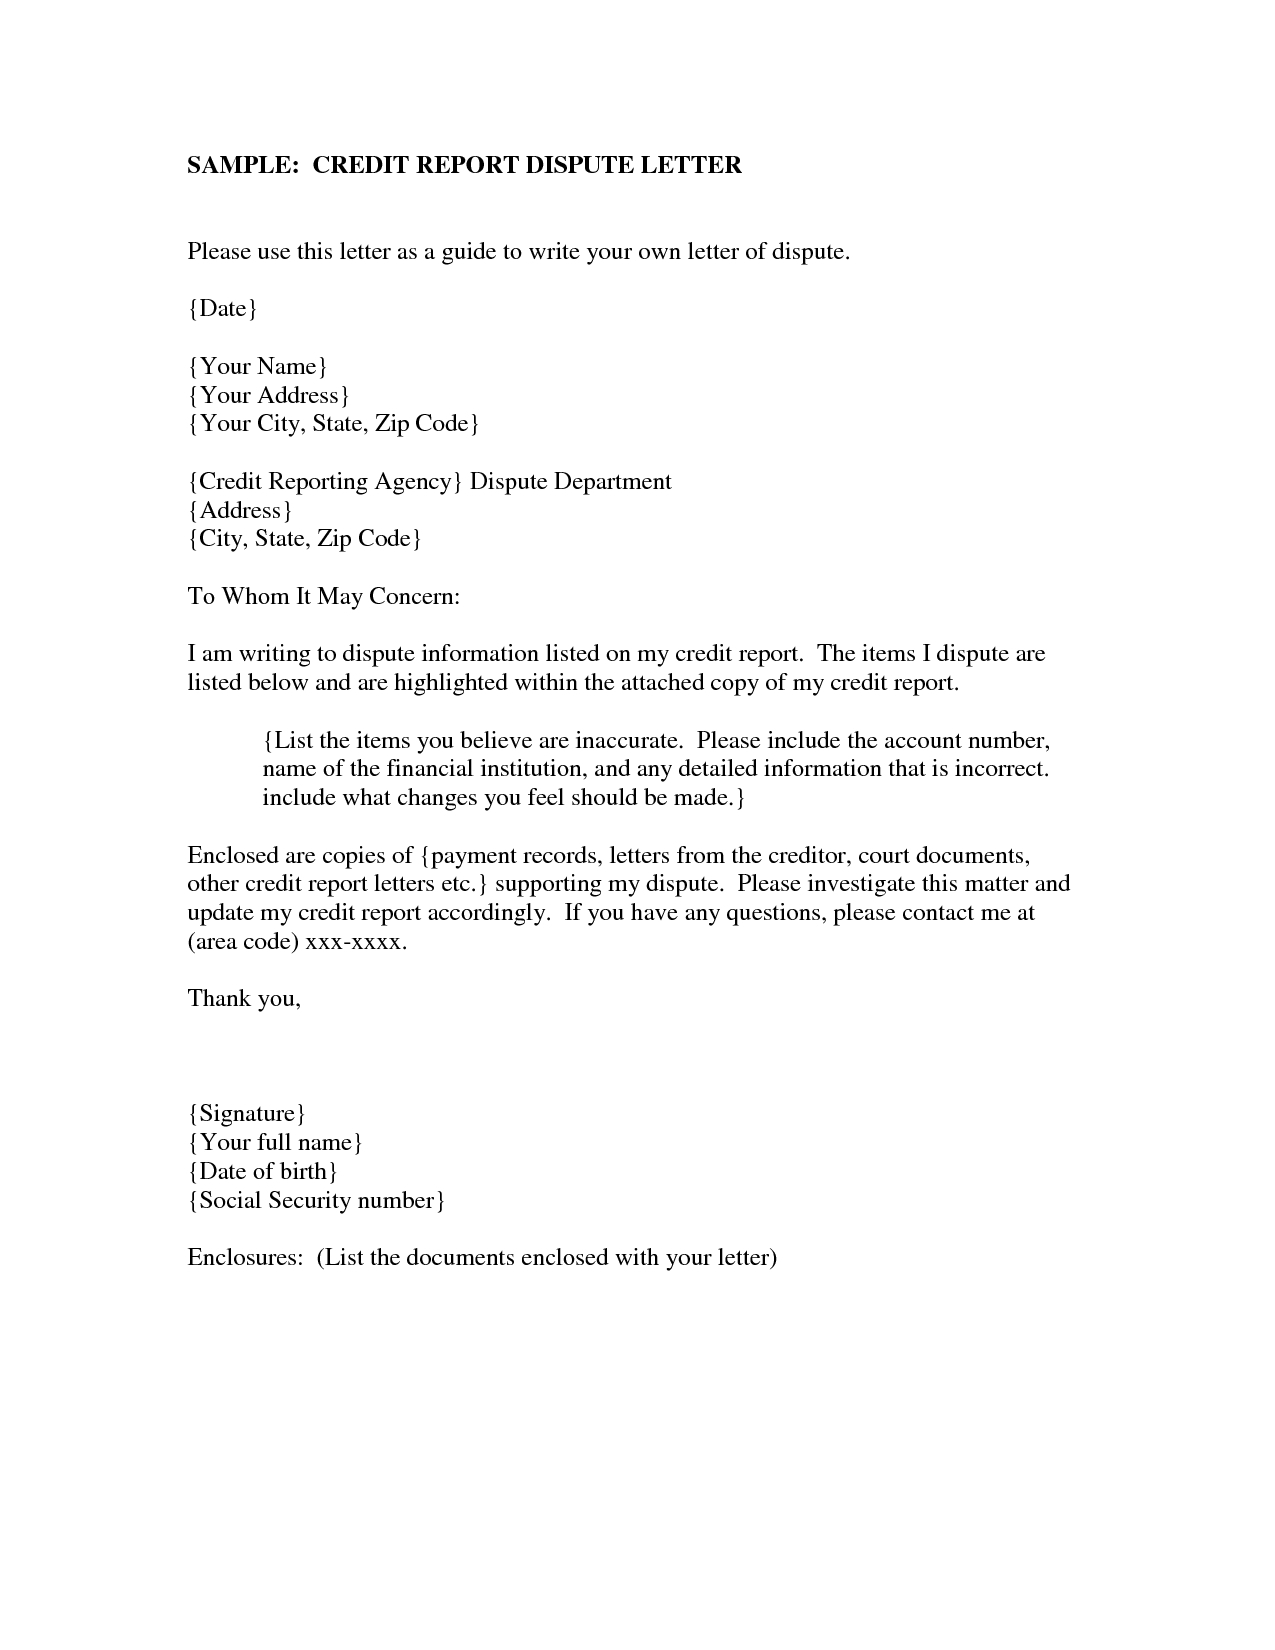 Credit Dispute Letter Template - How to Write Credit Dispute Letter Image Collections Letter format